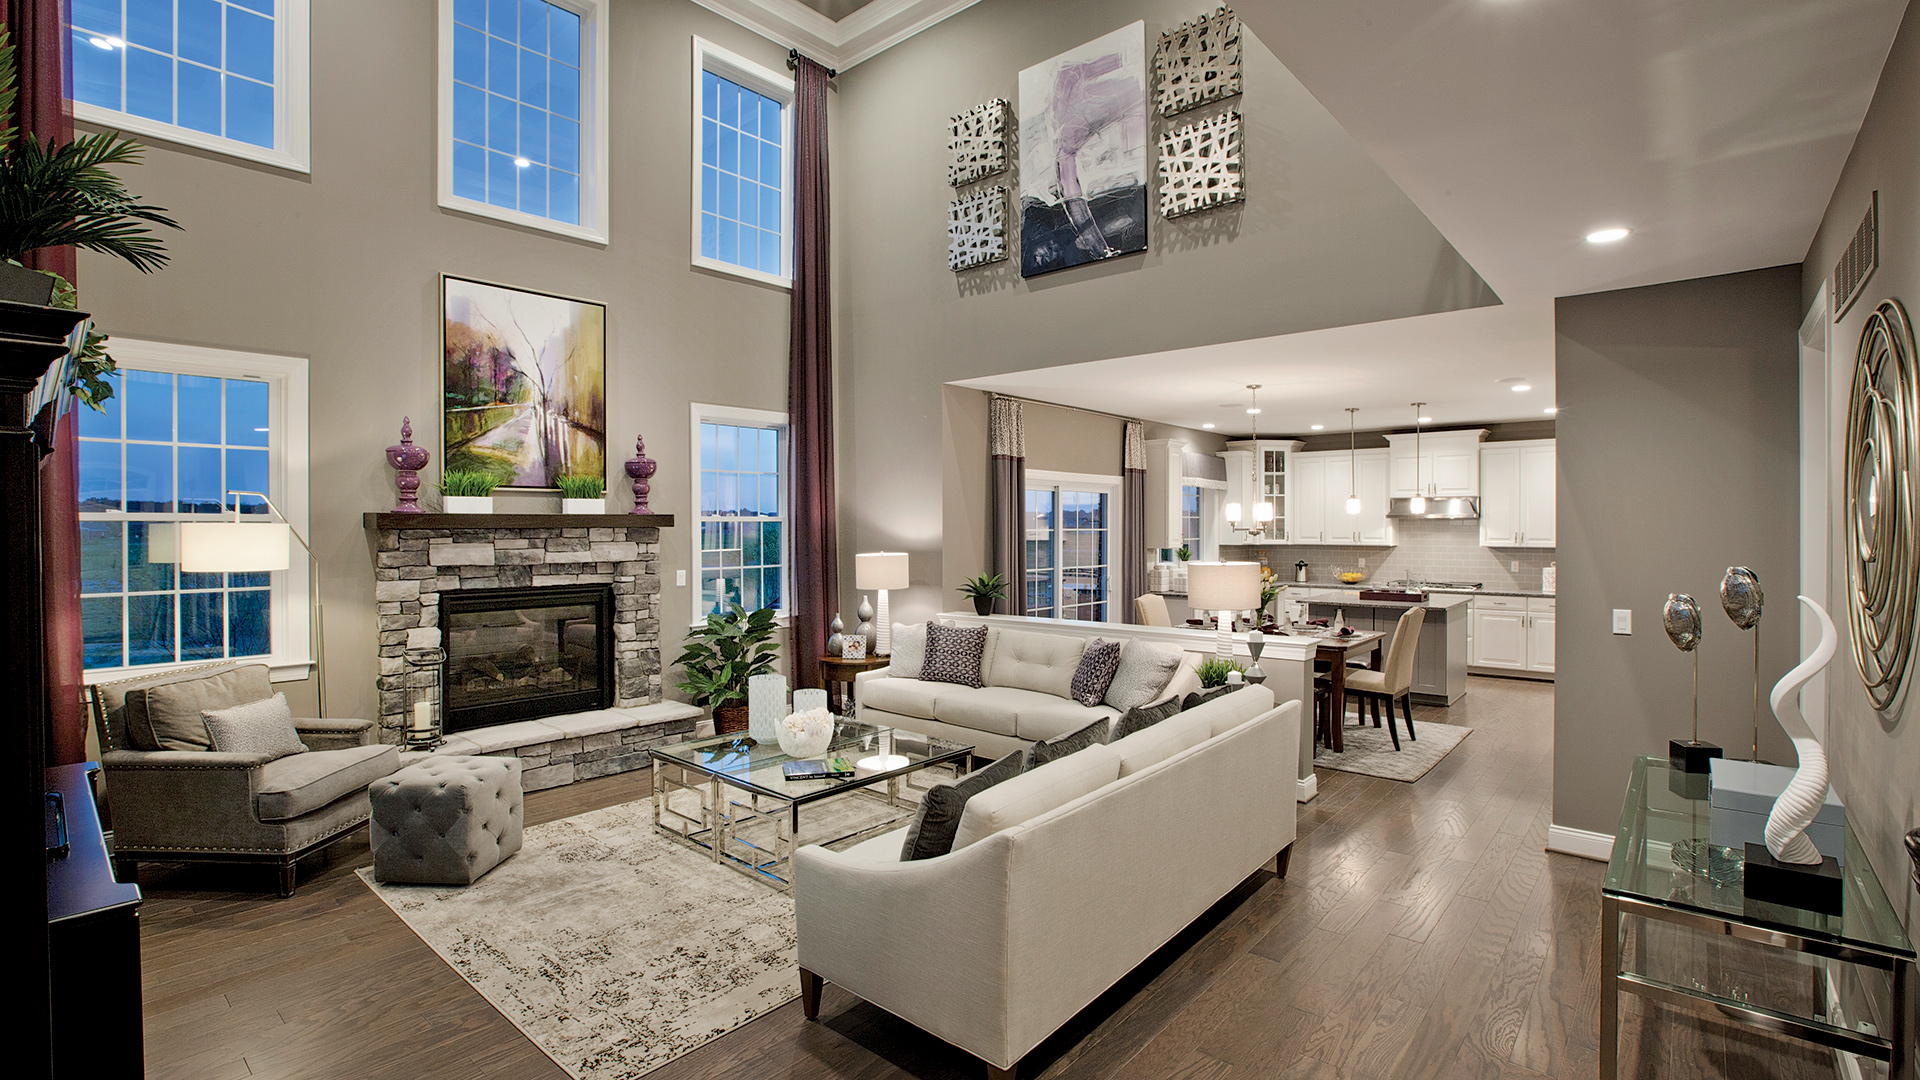 Stunning two-story and single-story great rooms